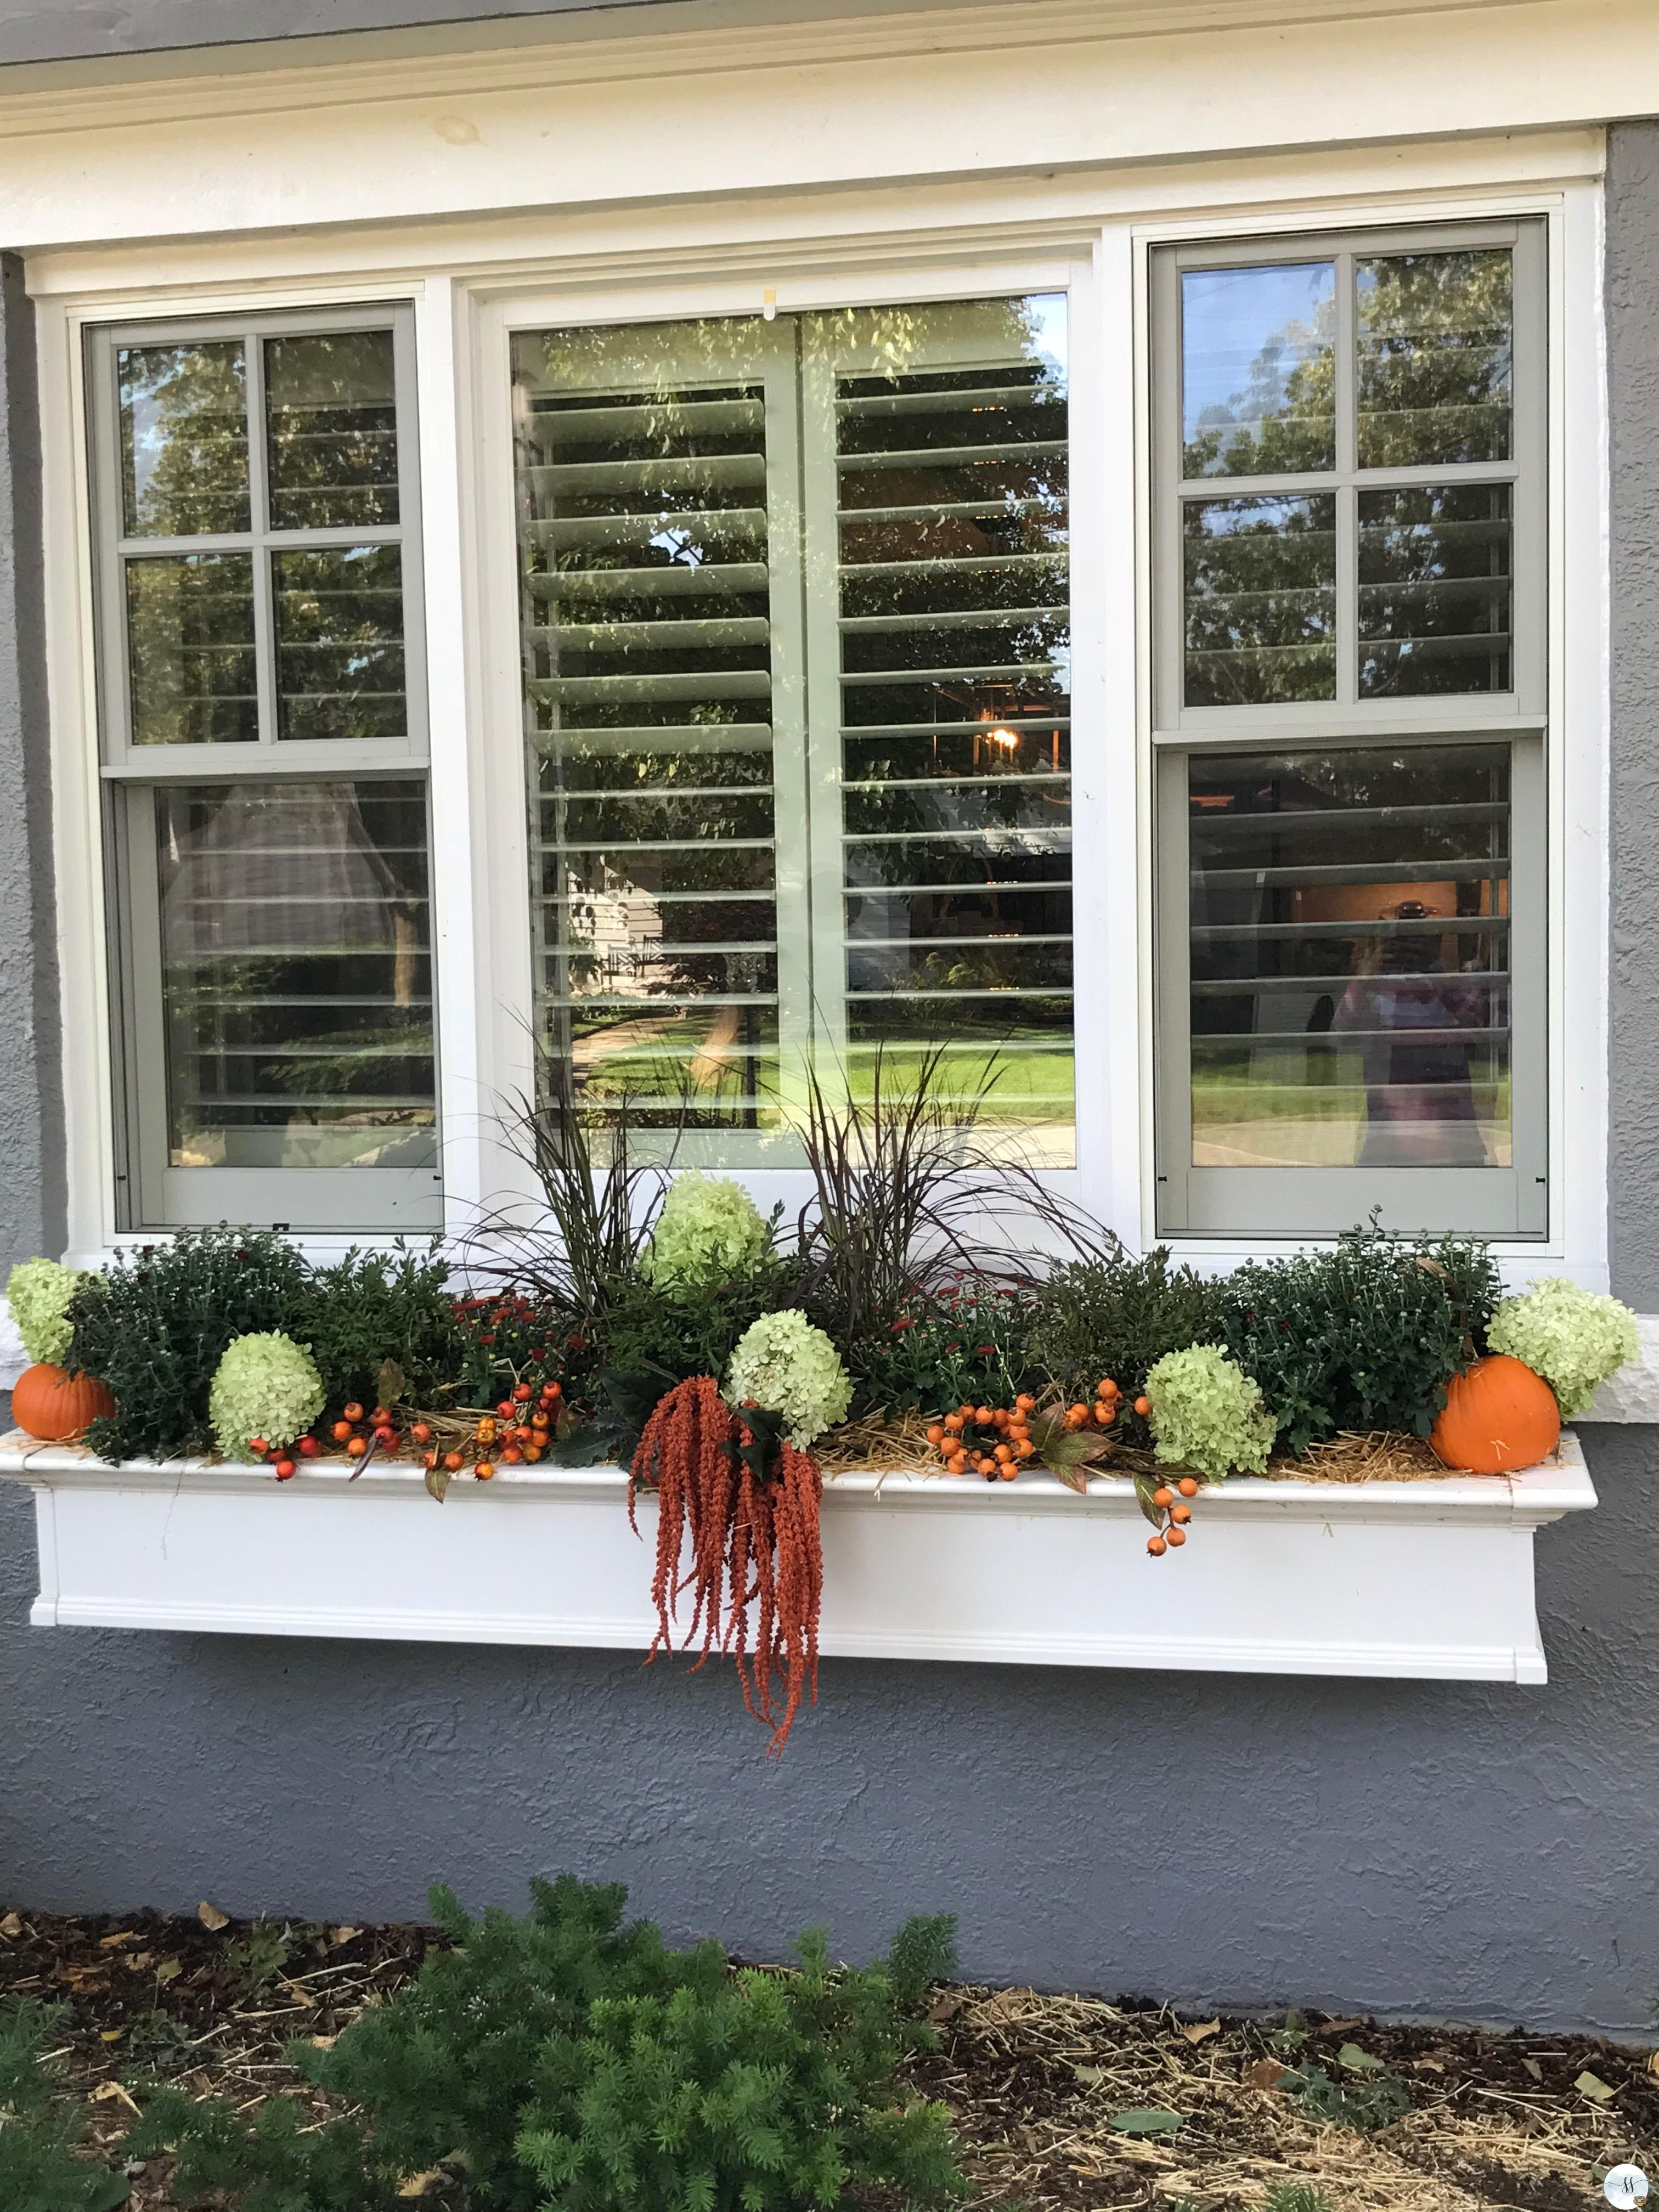 Fall decor, happy thanksgiving, mums, pumpkins, outdoor decor, better home and garden, garden decor